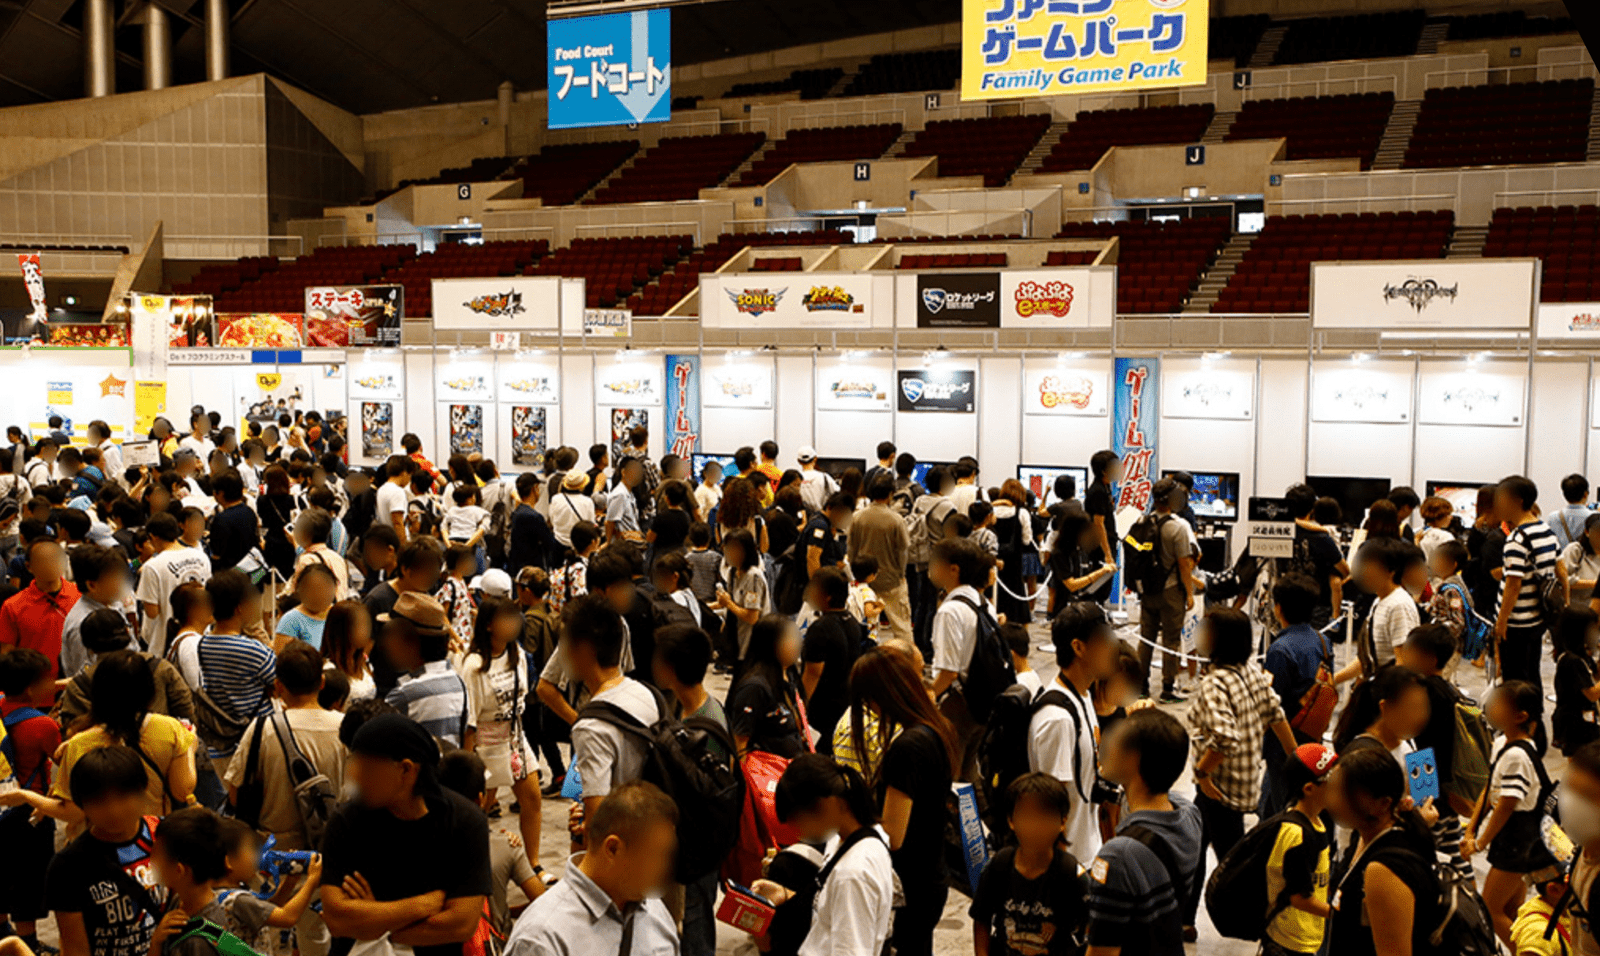 Tokyo Game Show 2019: the World's Largest Video Game Event - Japan